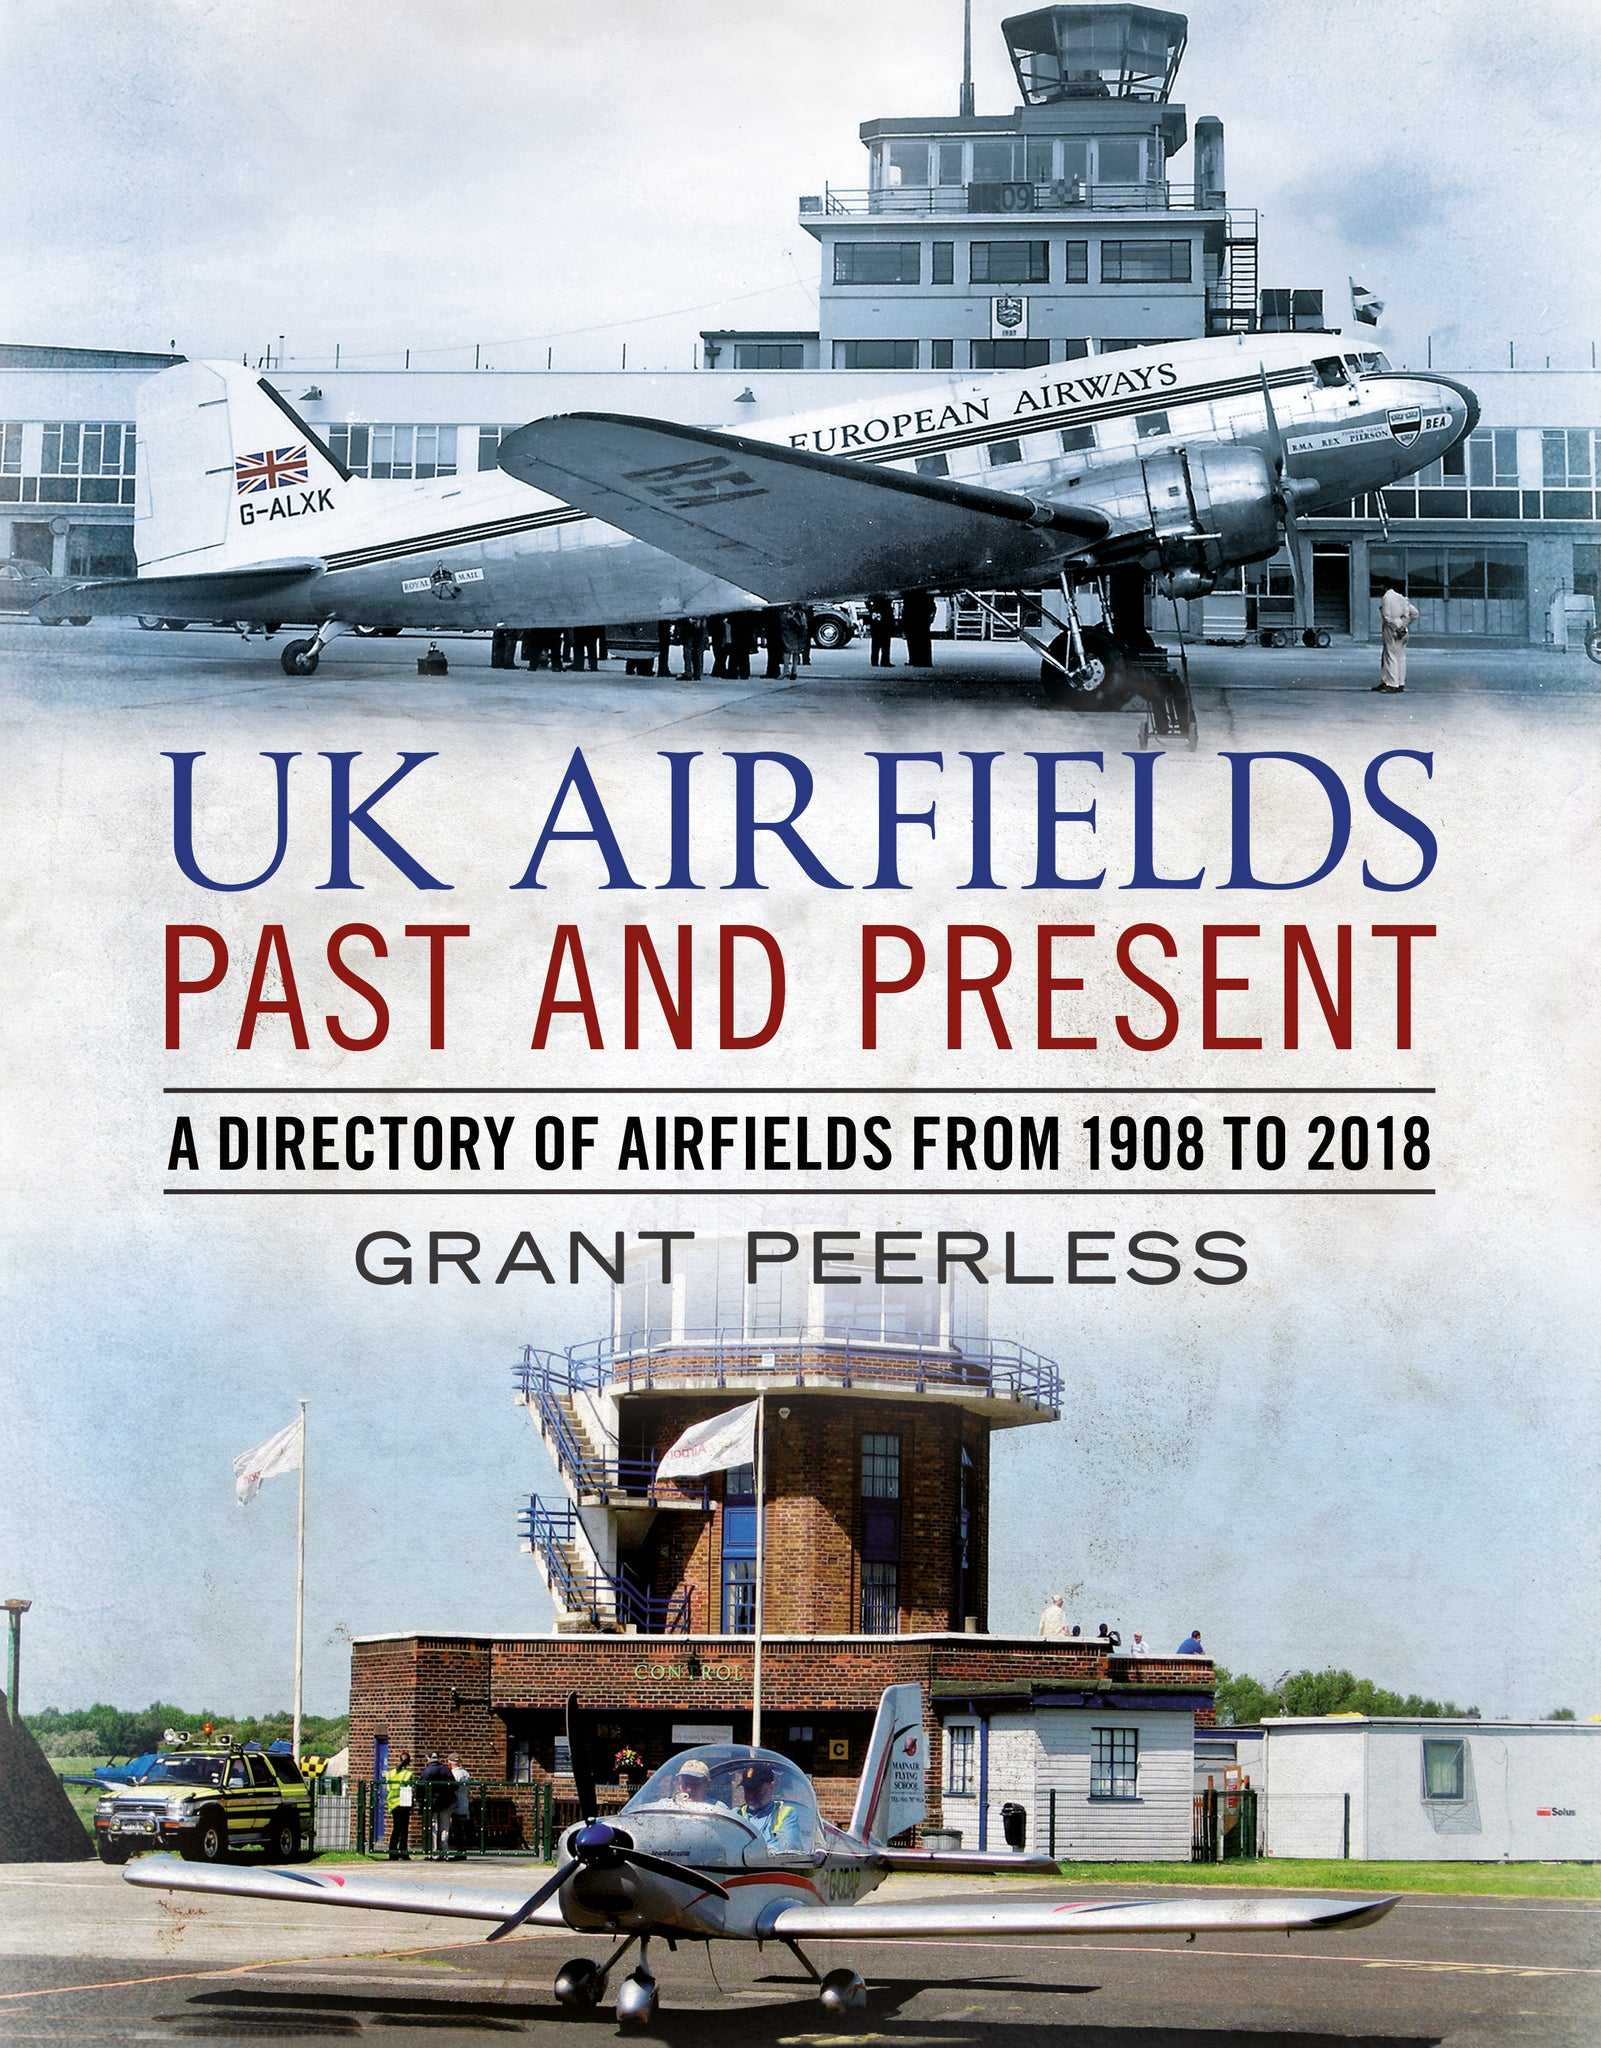 UK Airfields Past and Present: A Directory of Airfields from 1908 to 2018